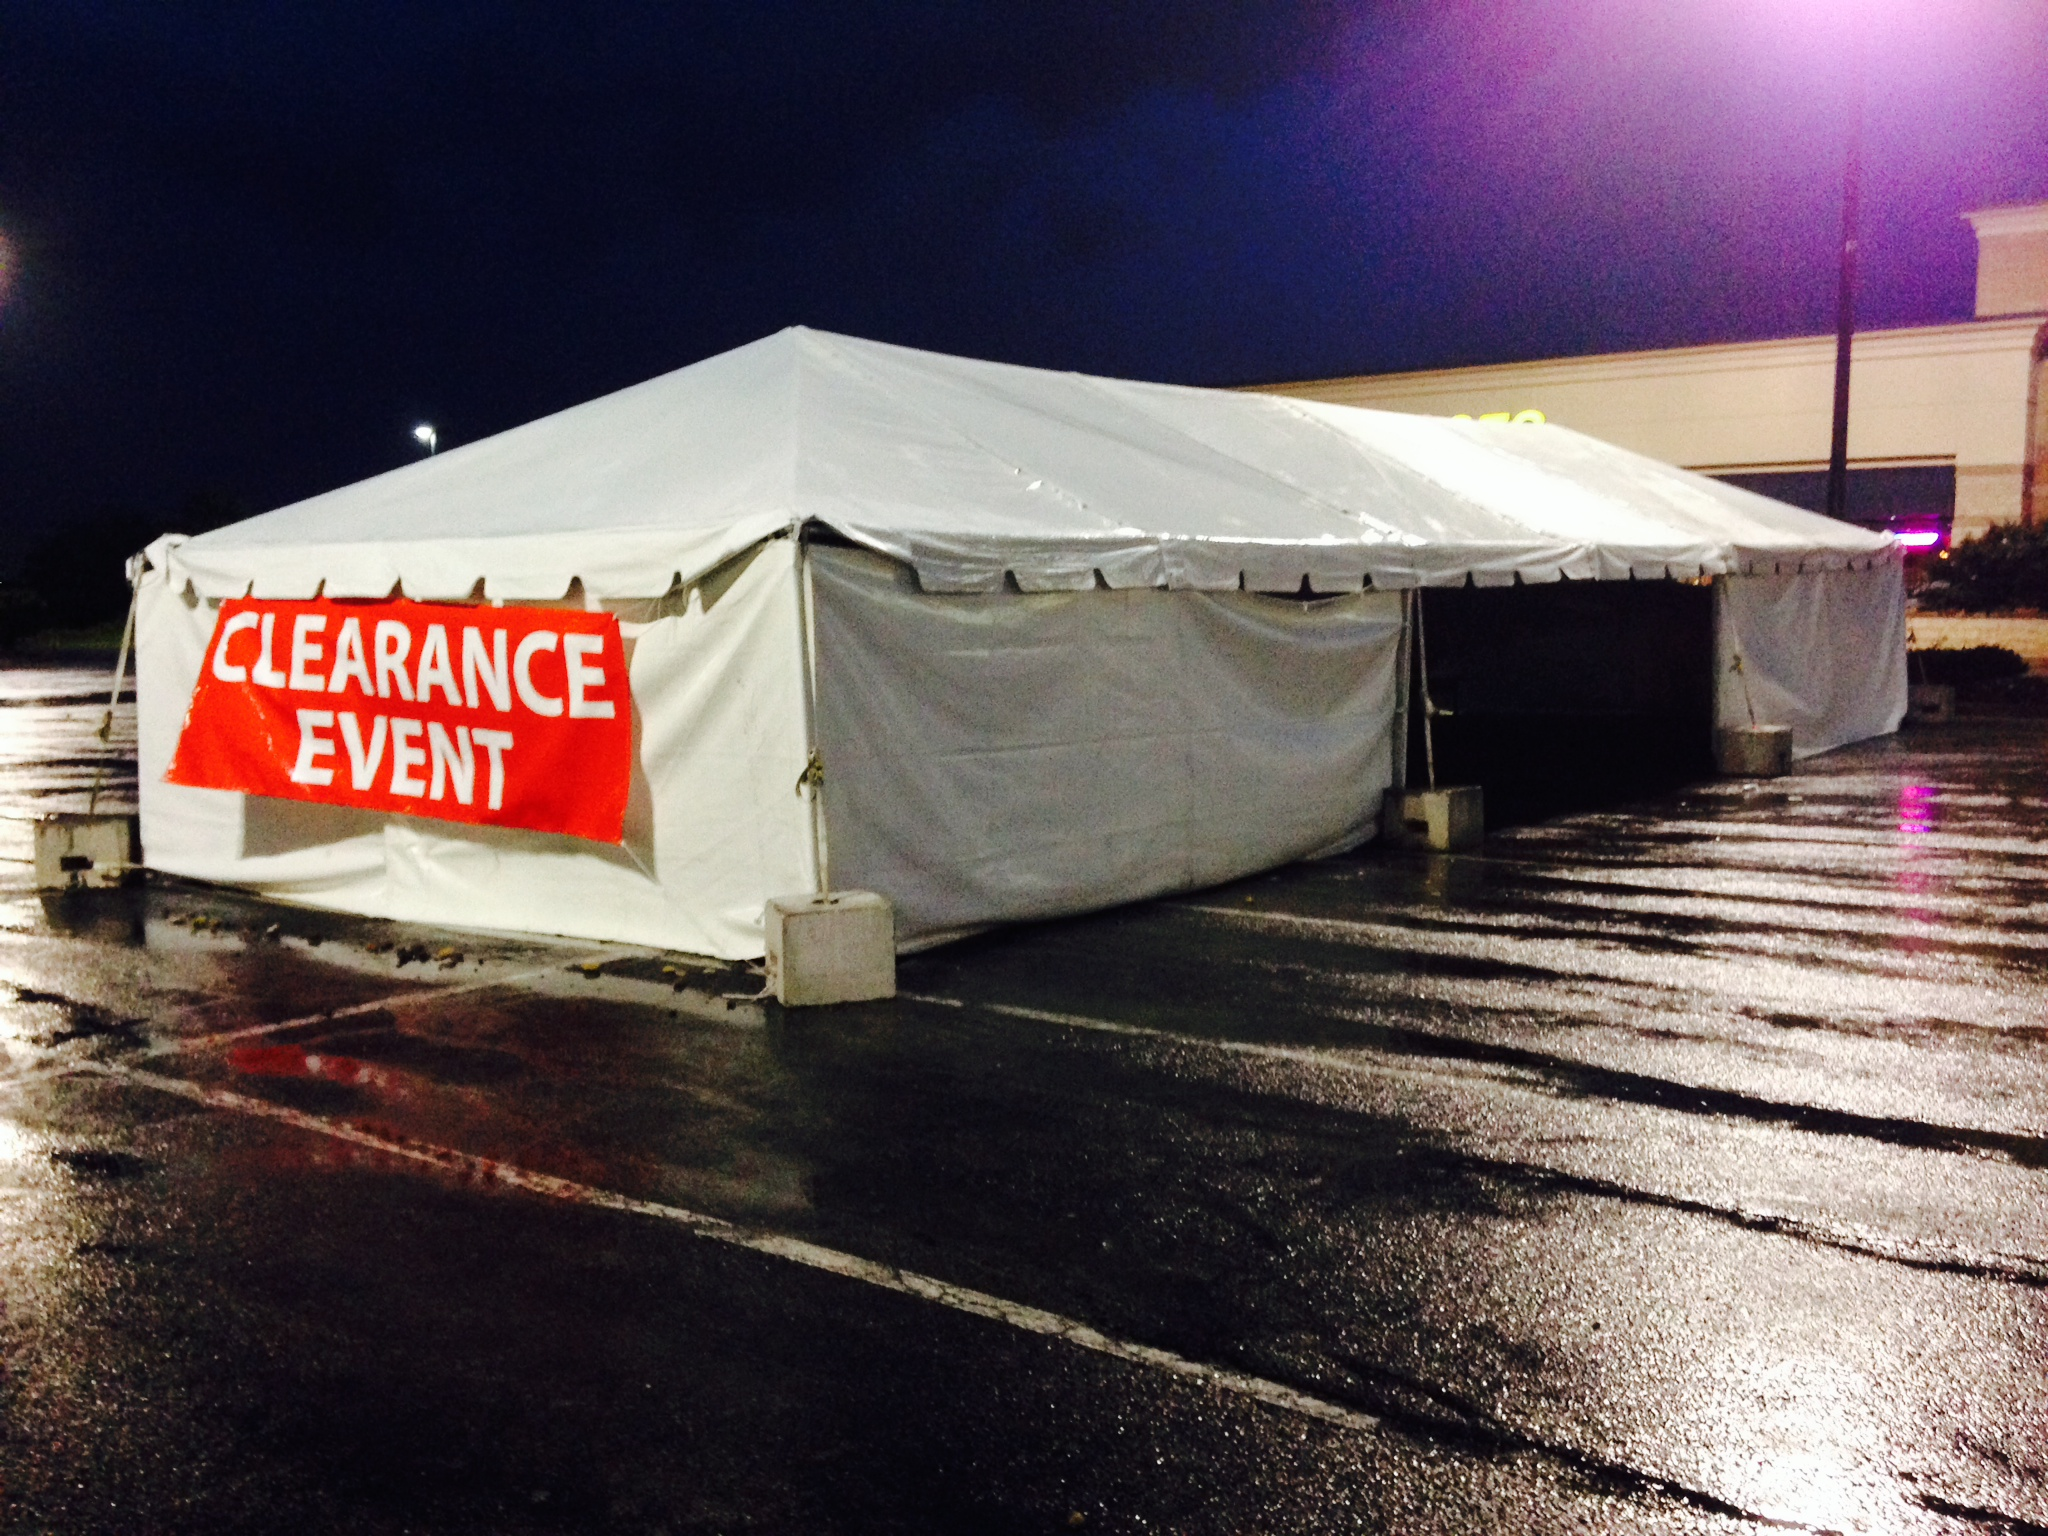 20u2032 x 60u2032 frame tent used for a clearance event in the parking lot. & 20u0027 x 60u0027 frame tent used for a clearance event in the parking lot ...